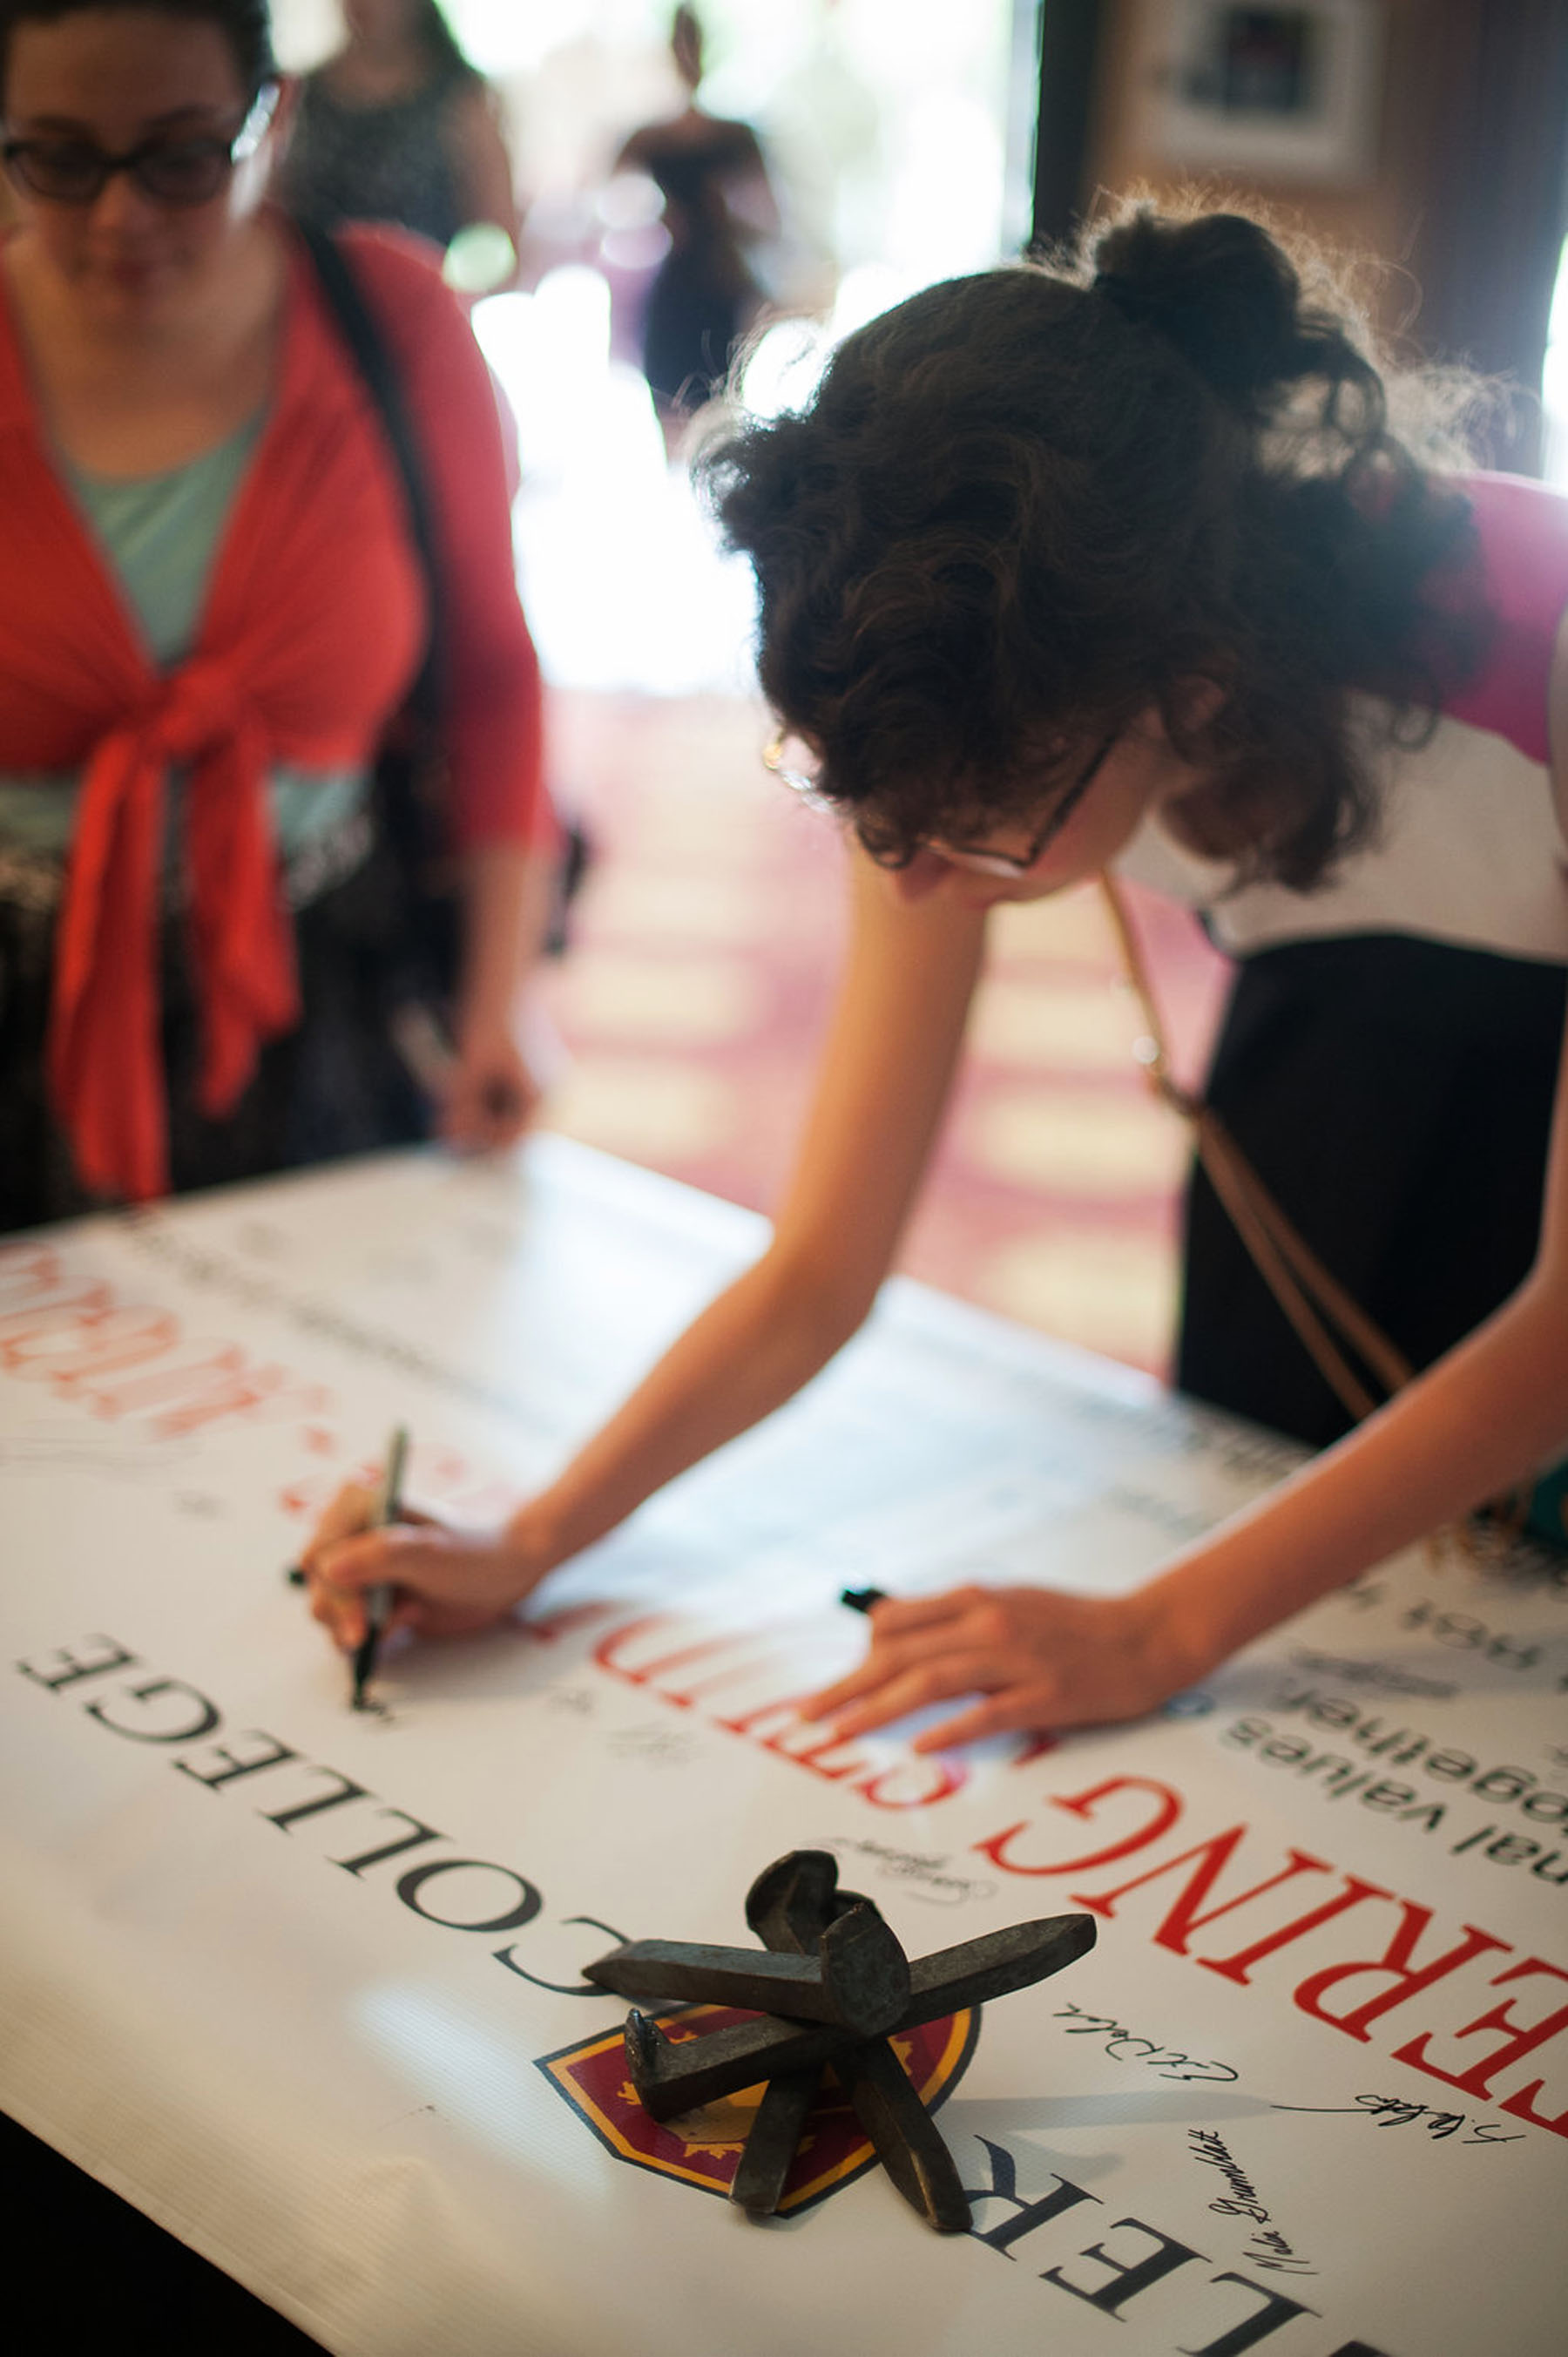 Signing the banner was part of the convocation rites at Flagler College